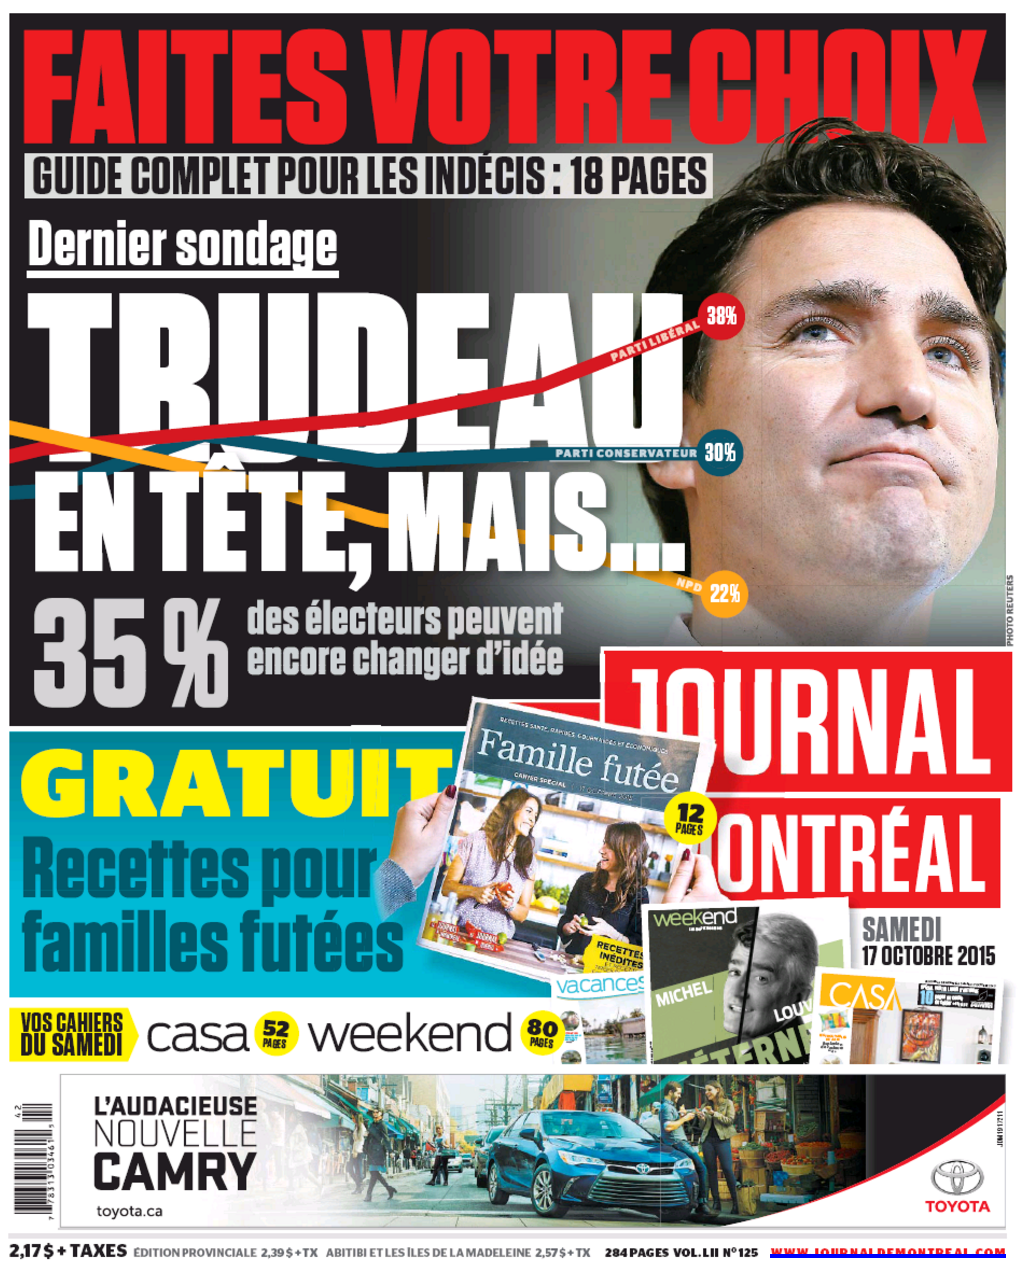 Journal_Montreal_17_Octombrie_2015